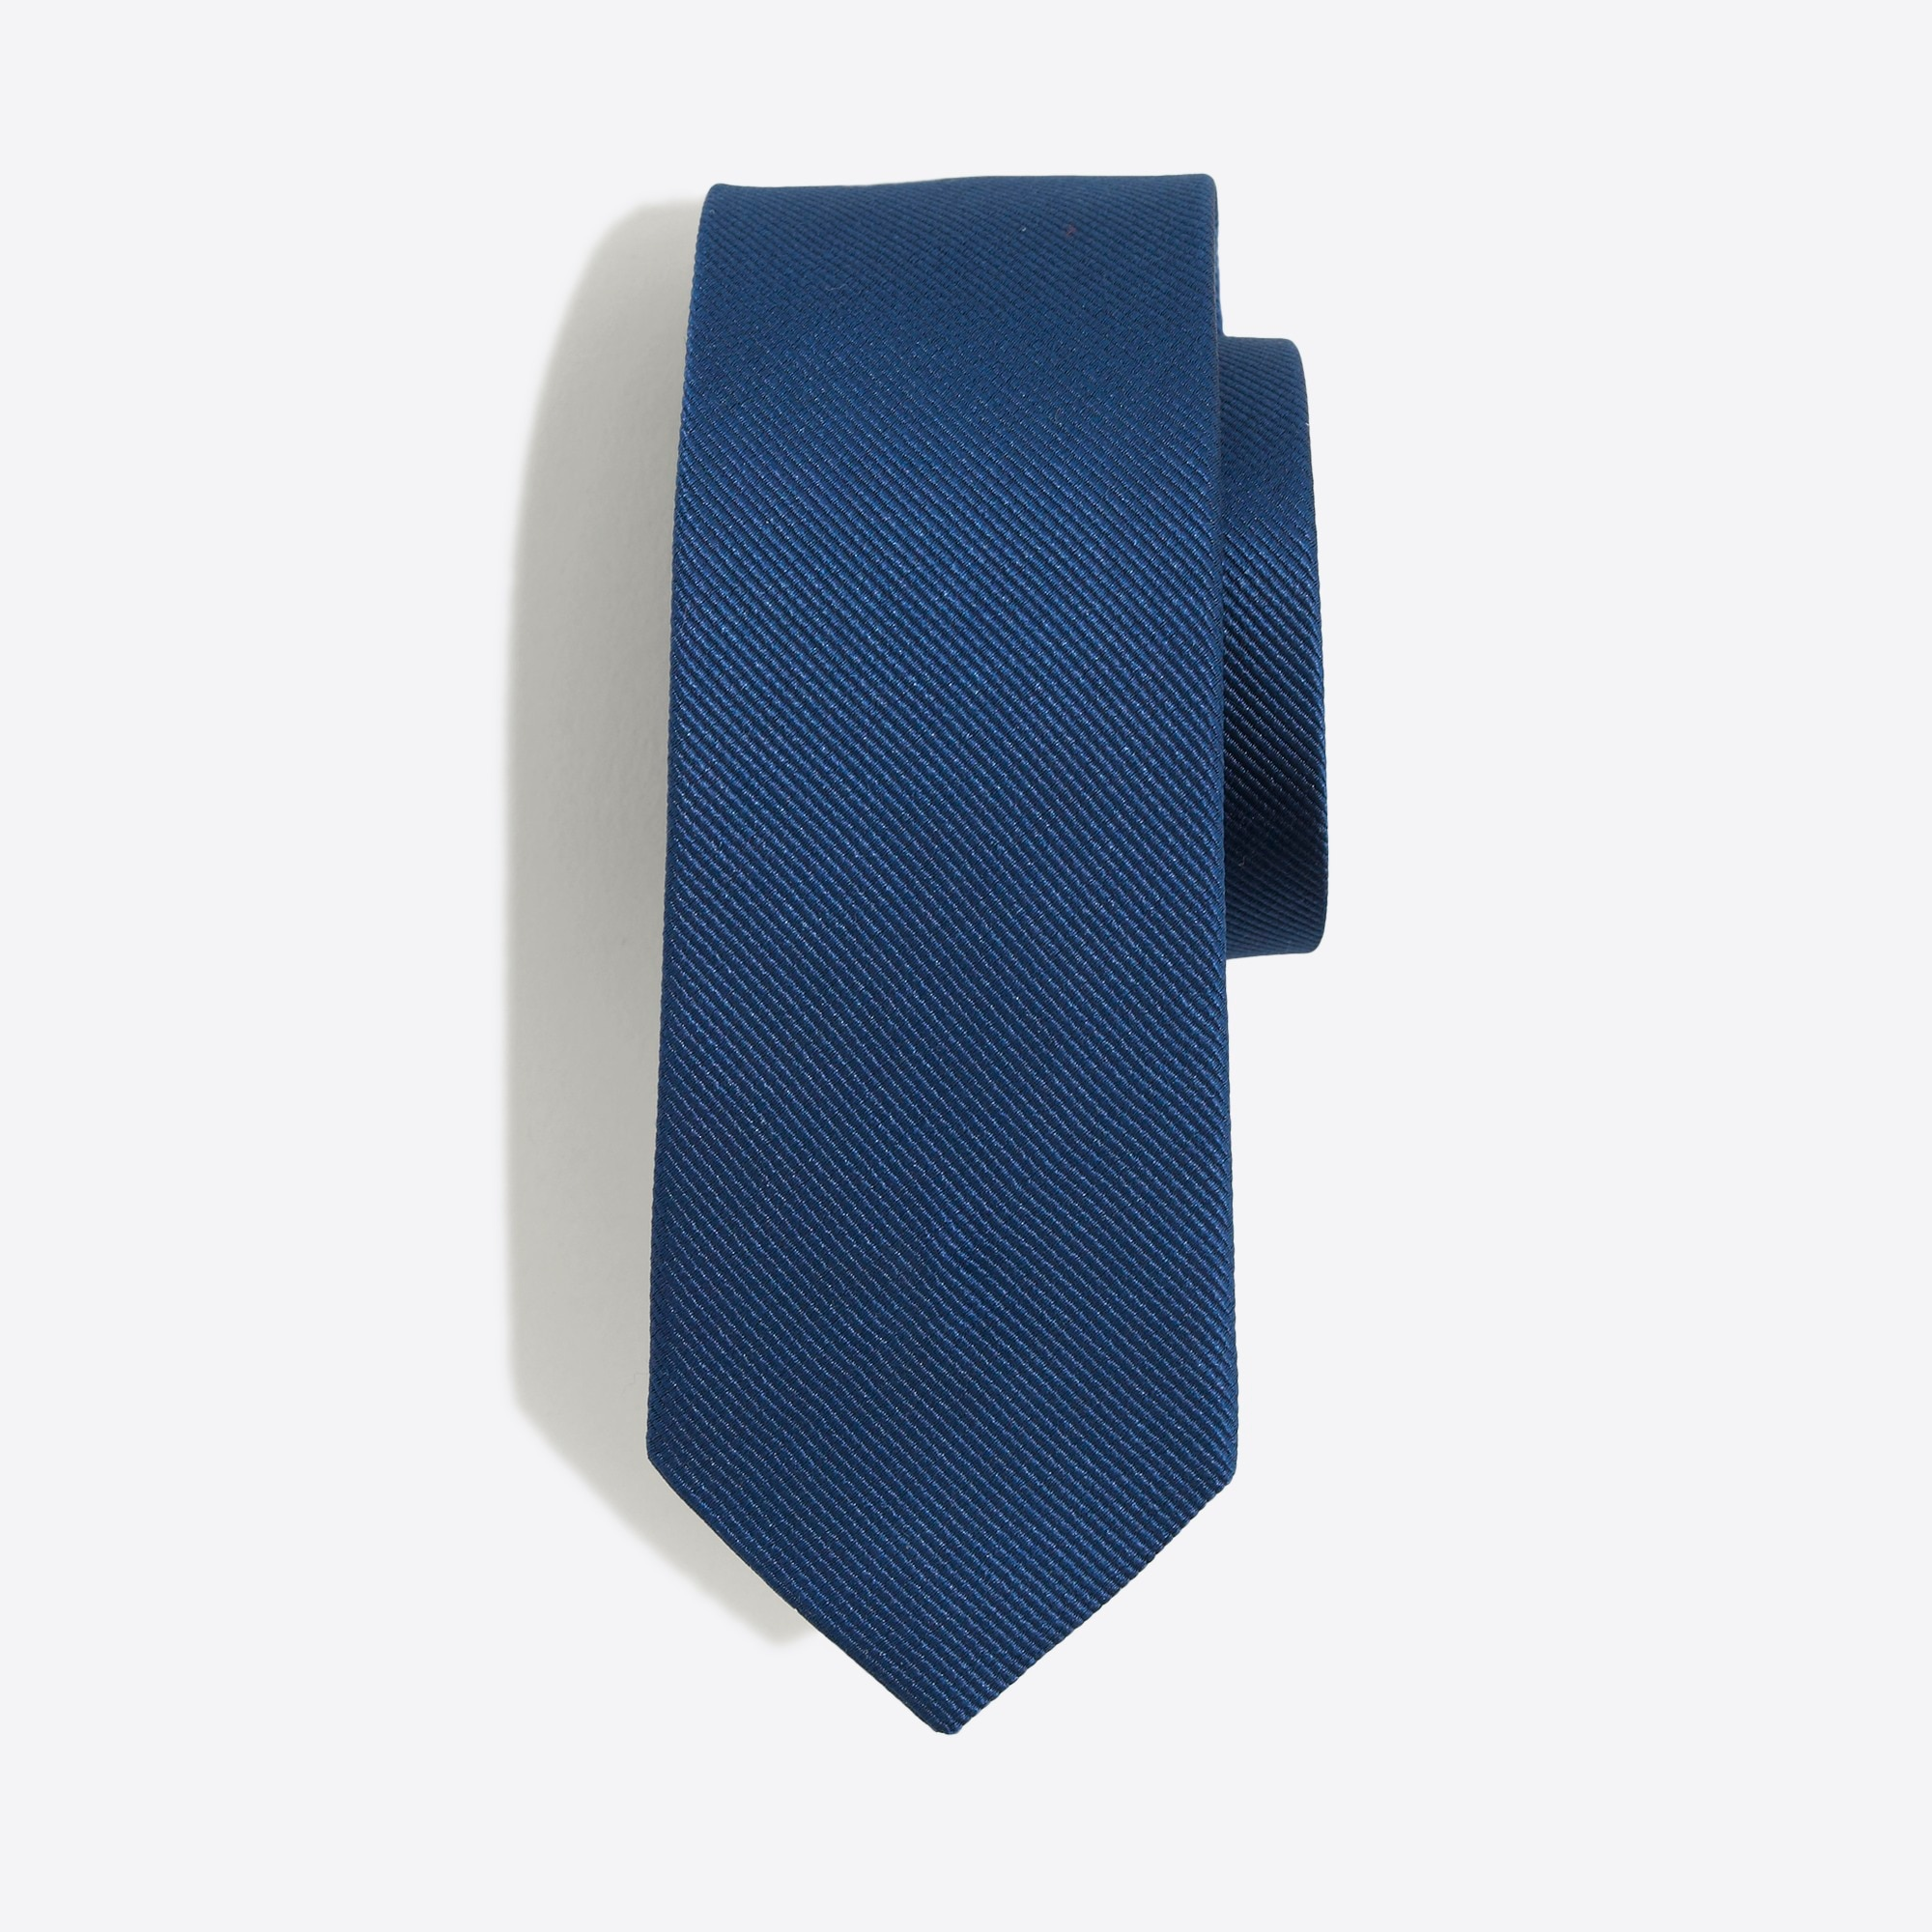 factory boys Boys' silk tie